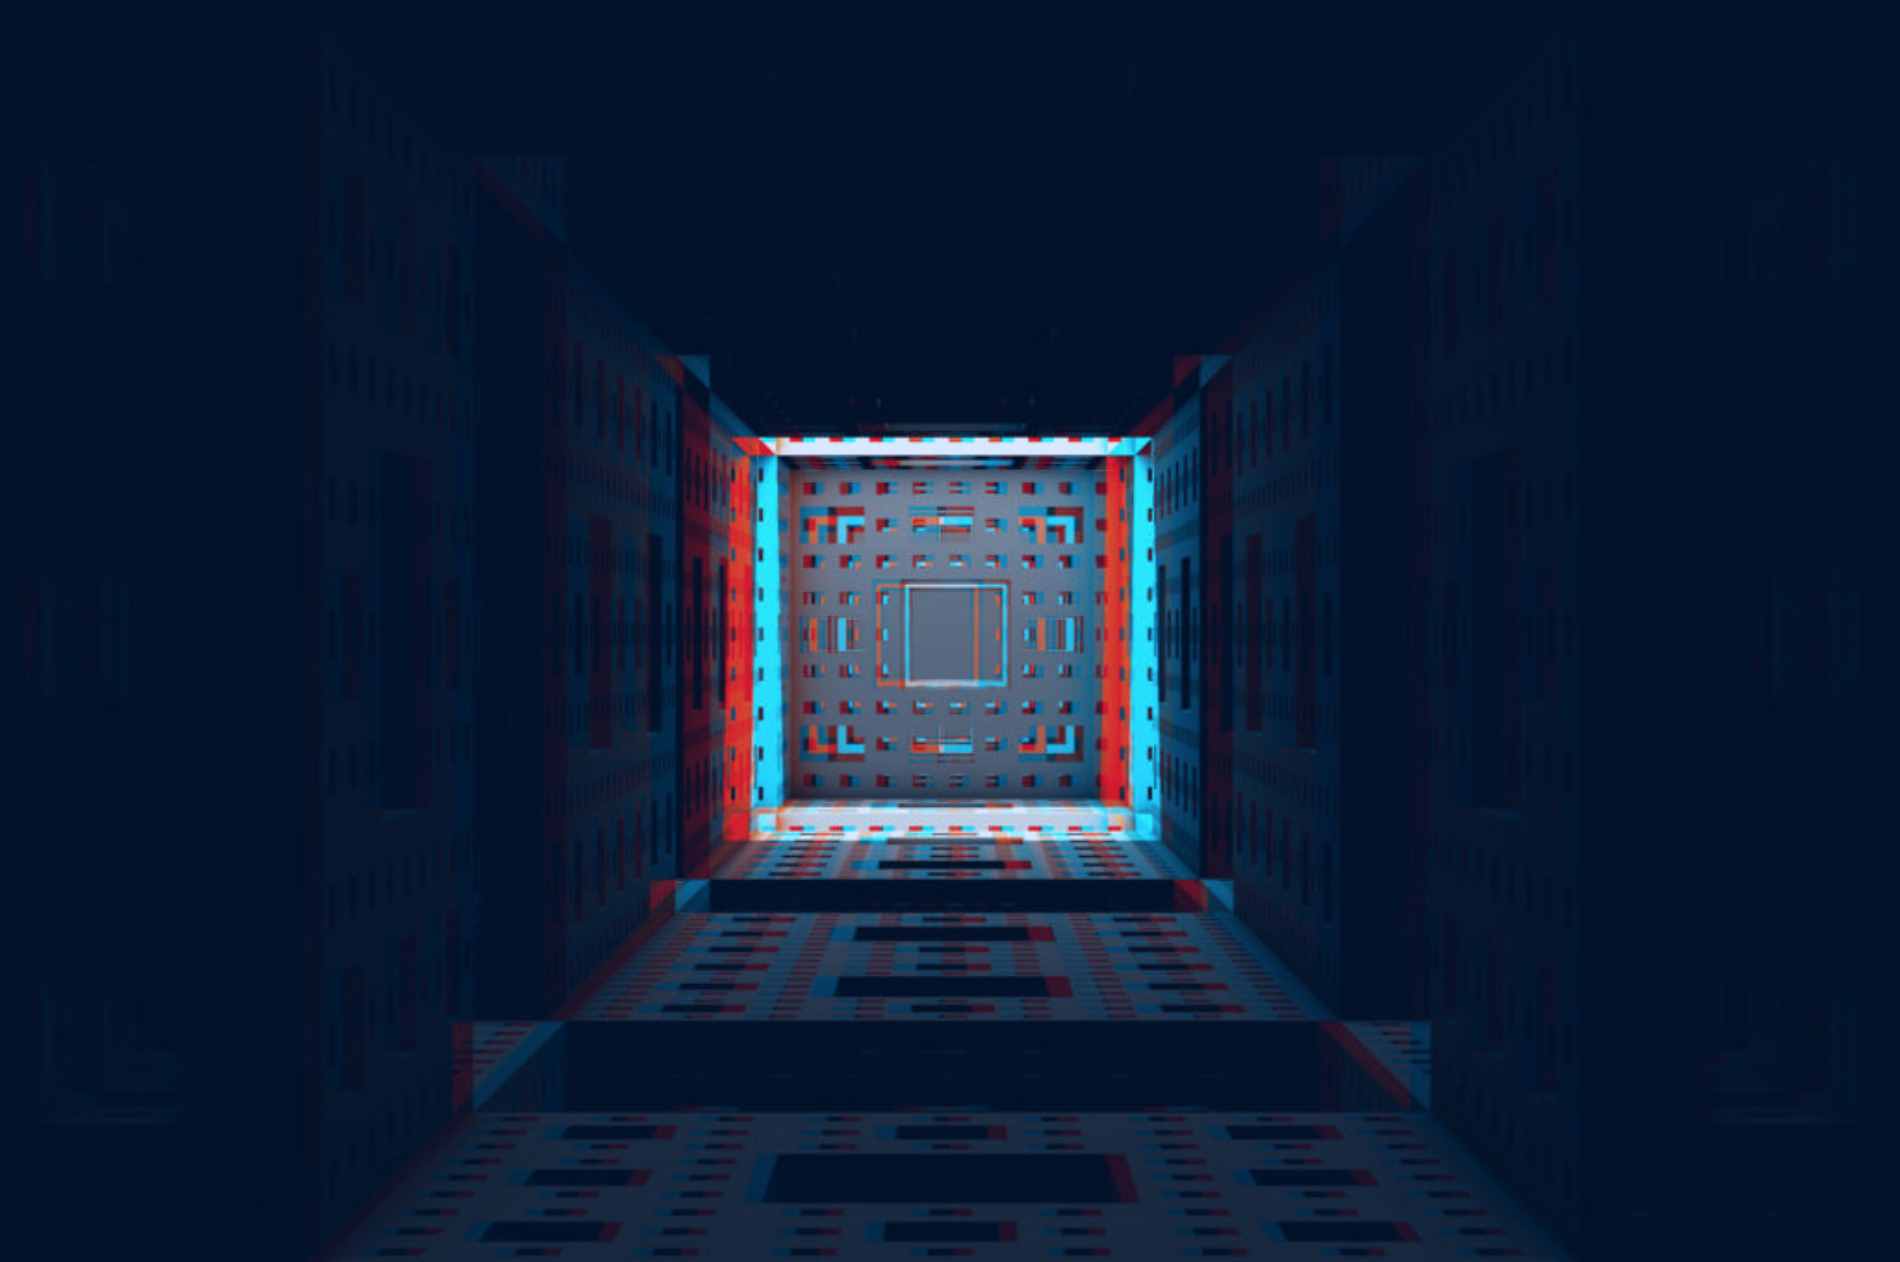 Video mapping and Projection mapping